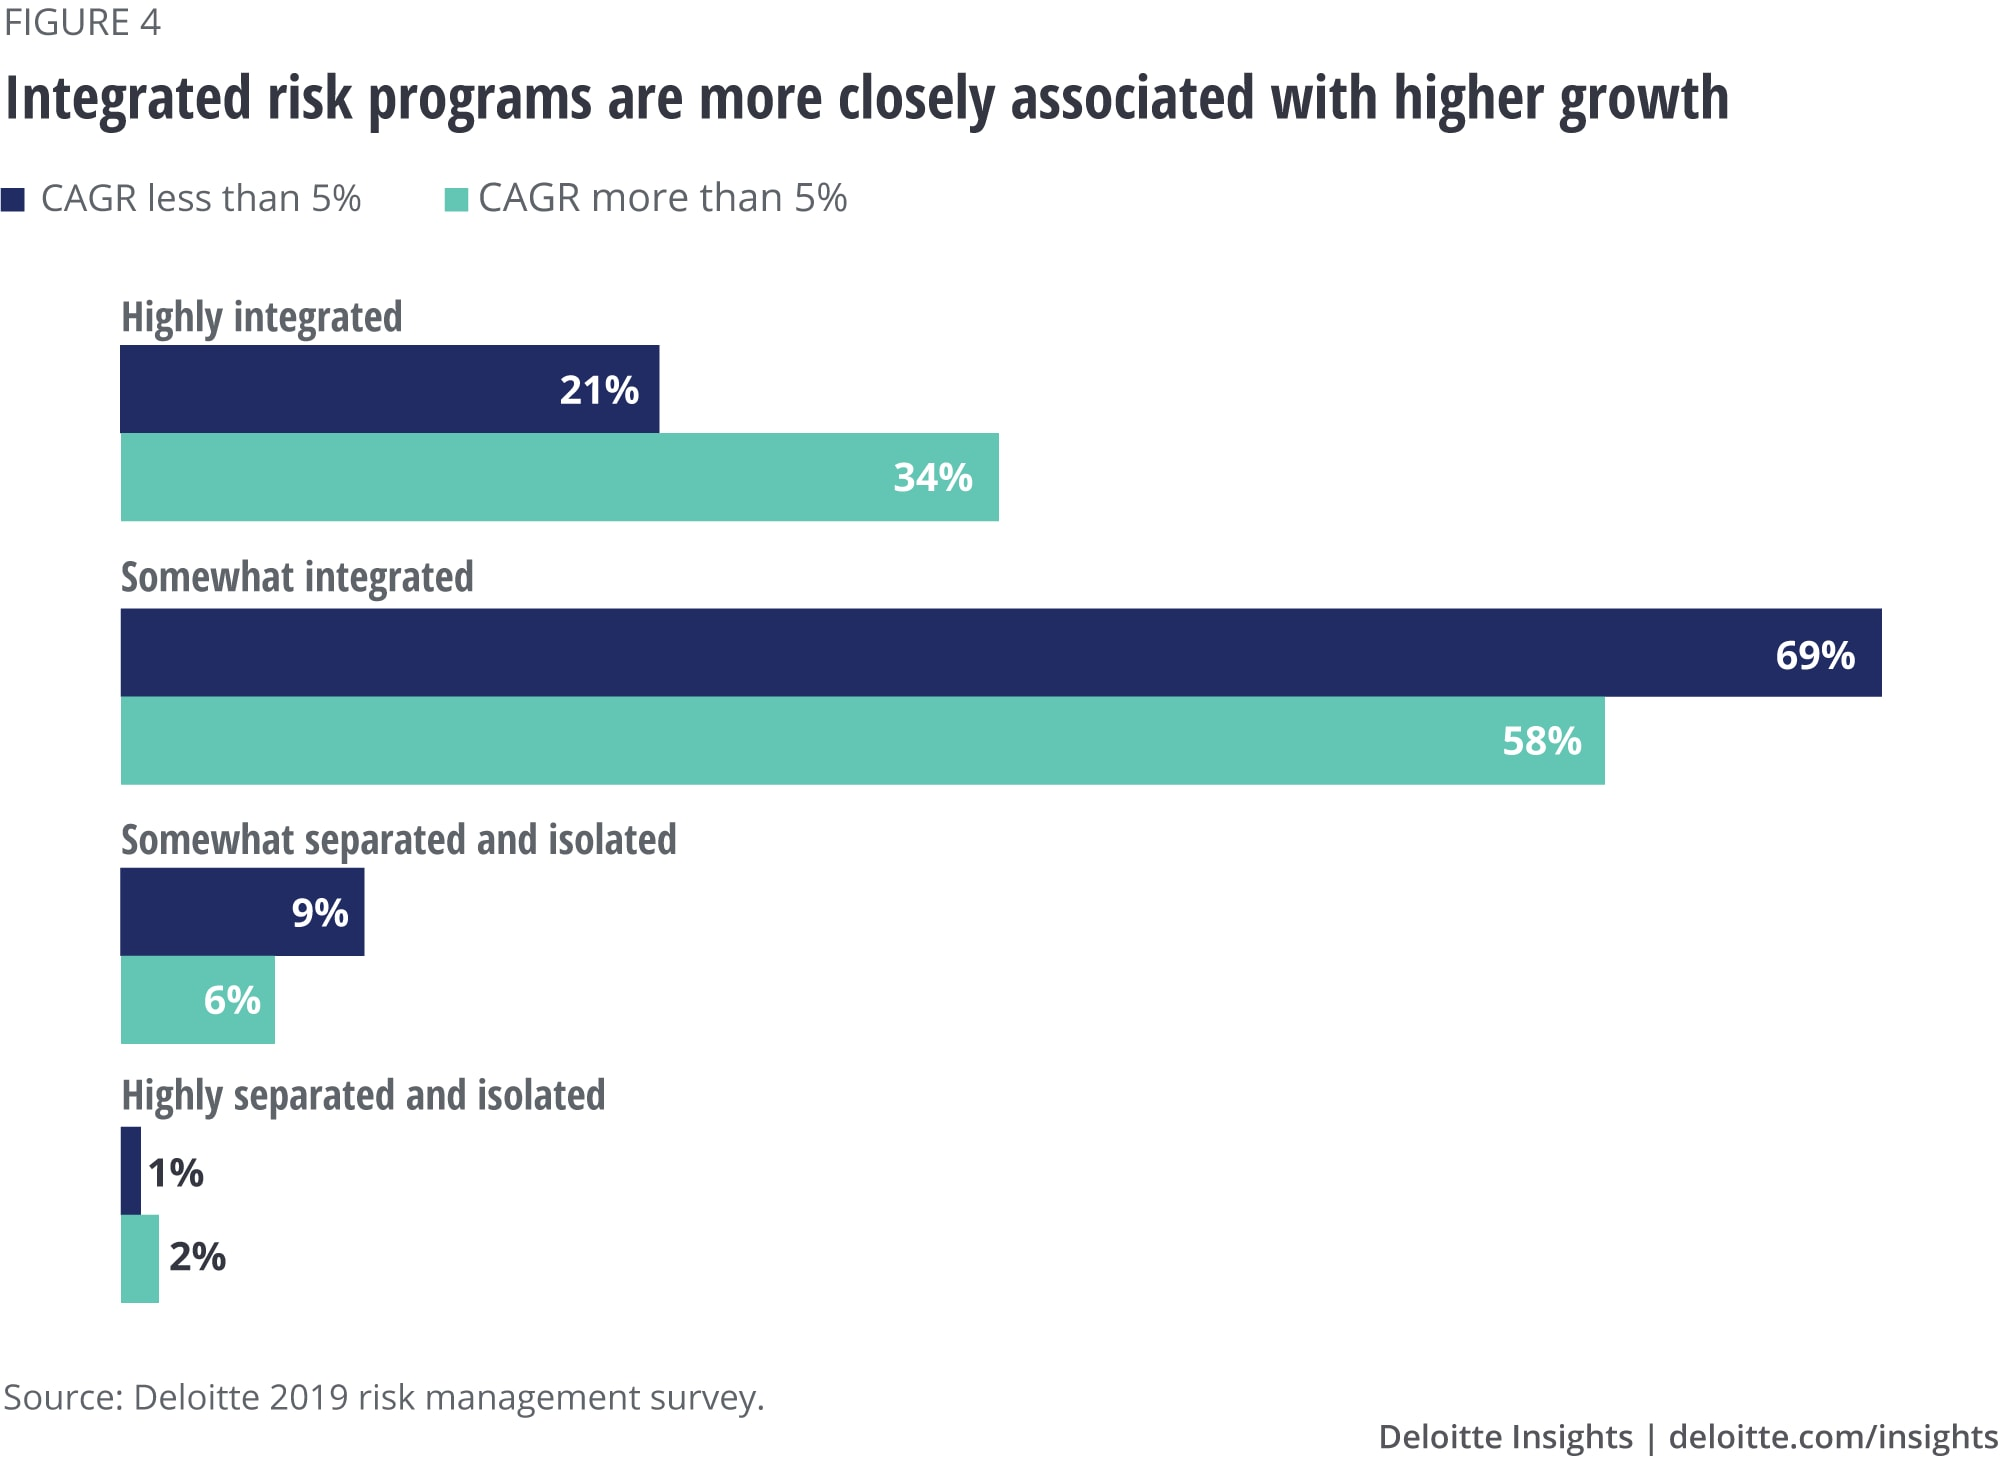 Integrated risk programs are more closely associated with higher growth